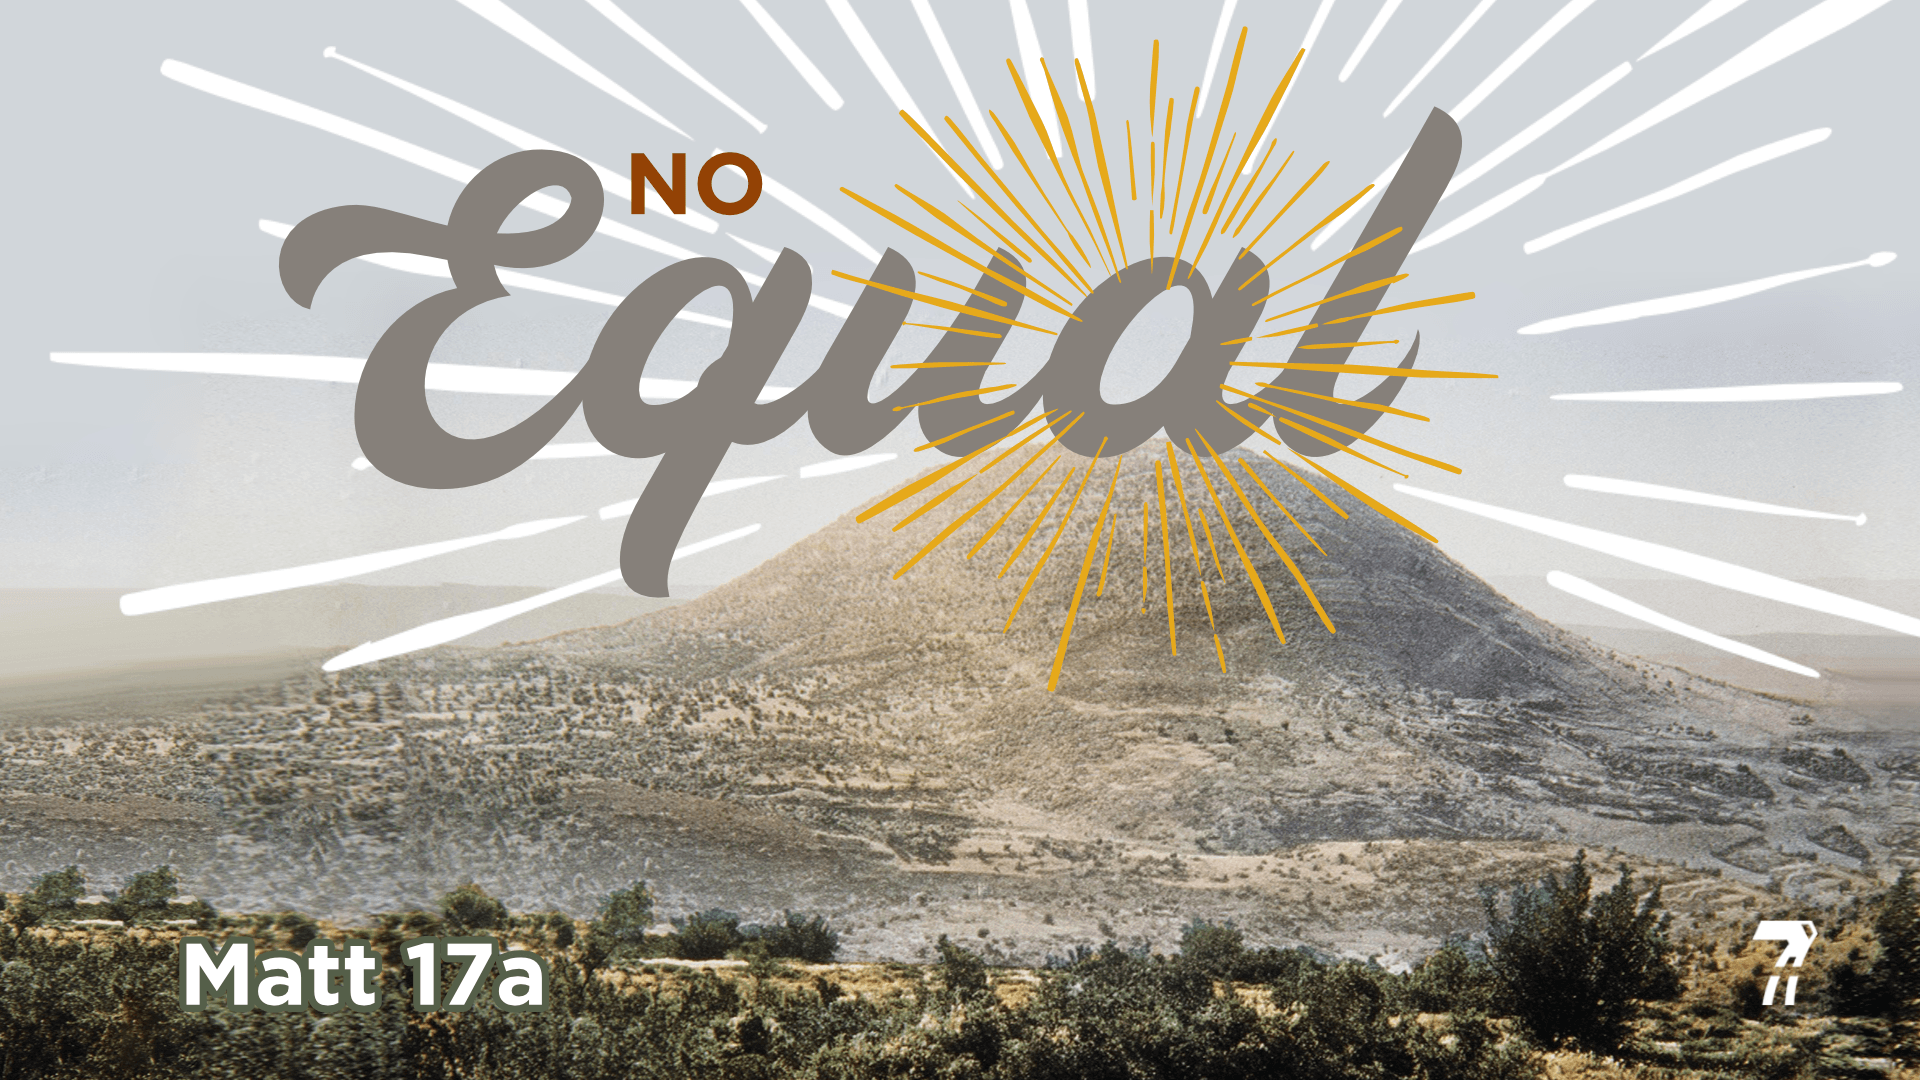 Matthew 17a – No Equal